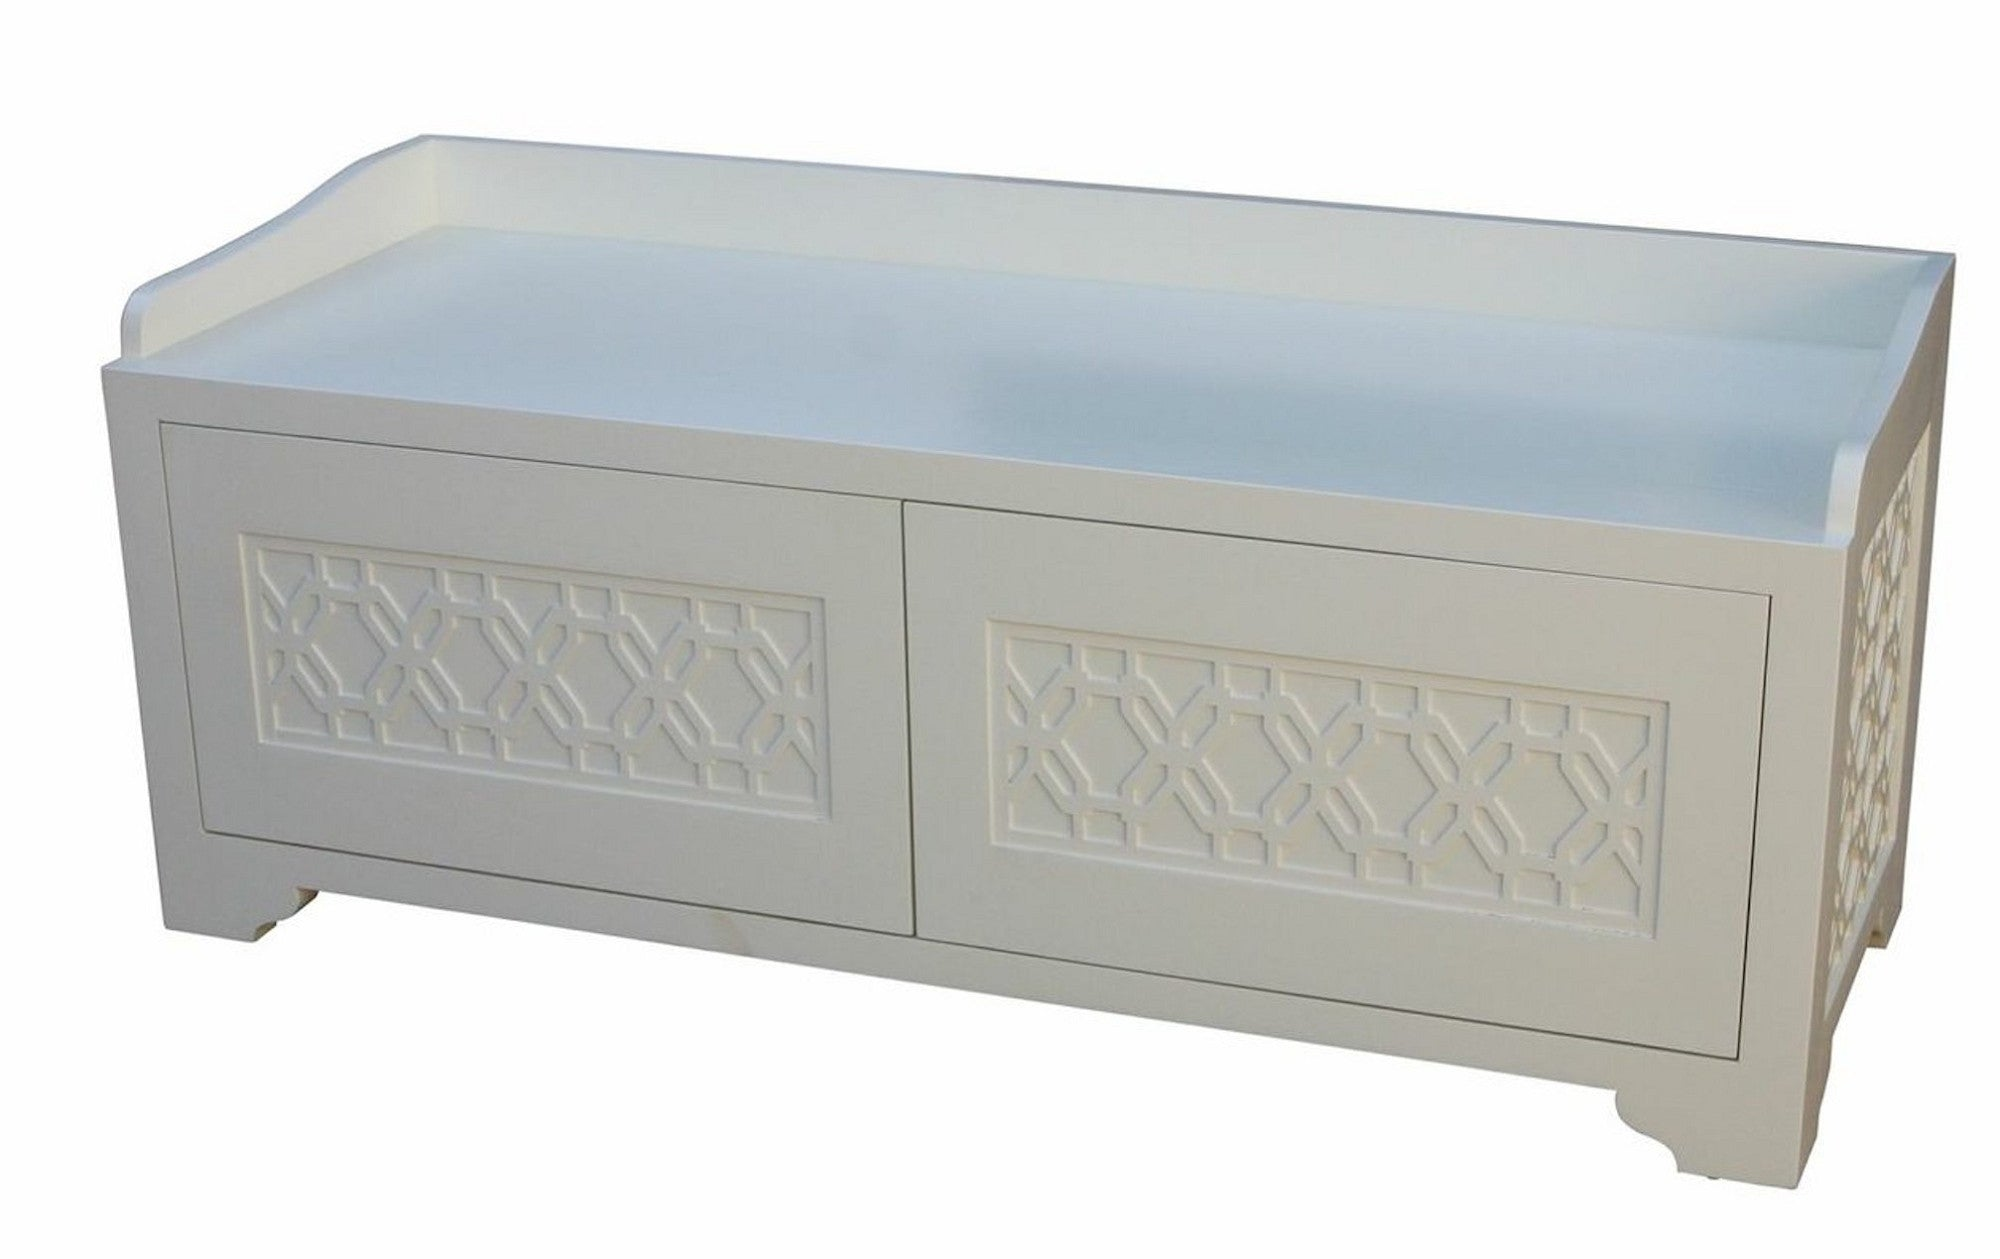 ... Custom Bedroom Storage Bench With Geometric Lattice Tracery ...